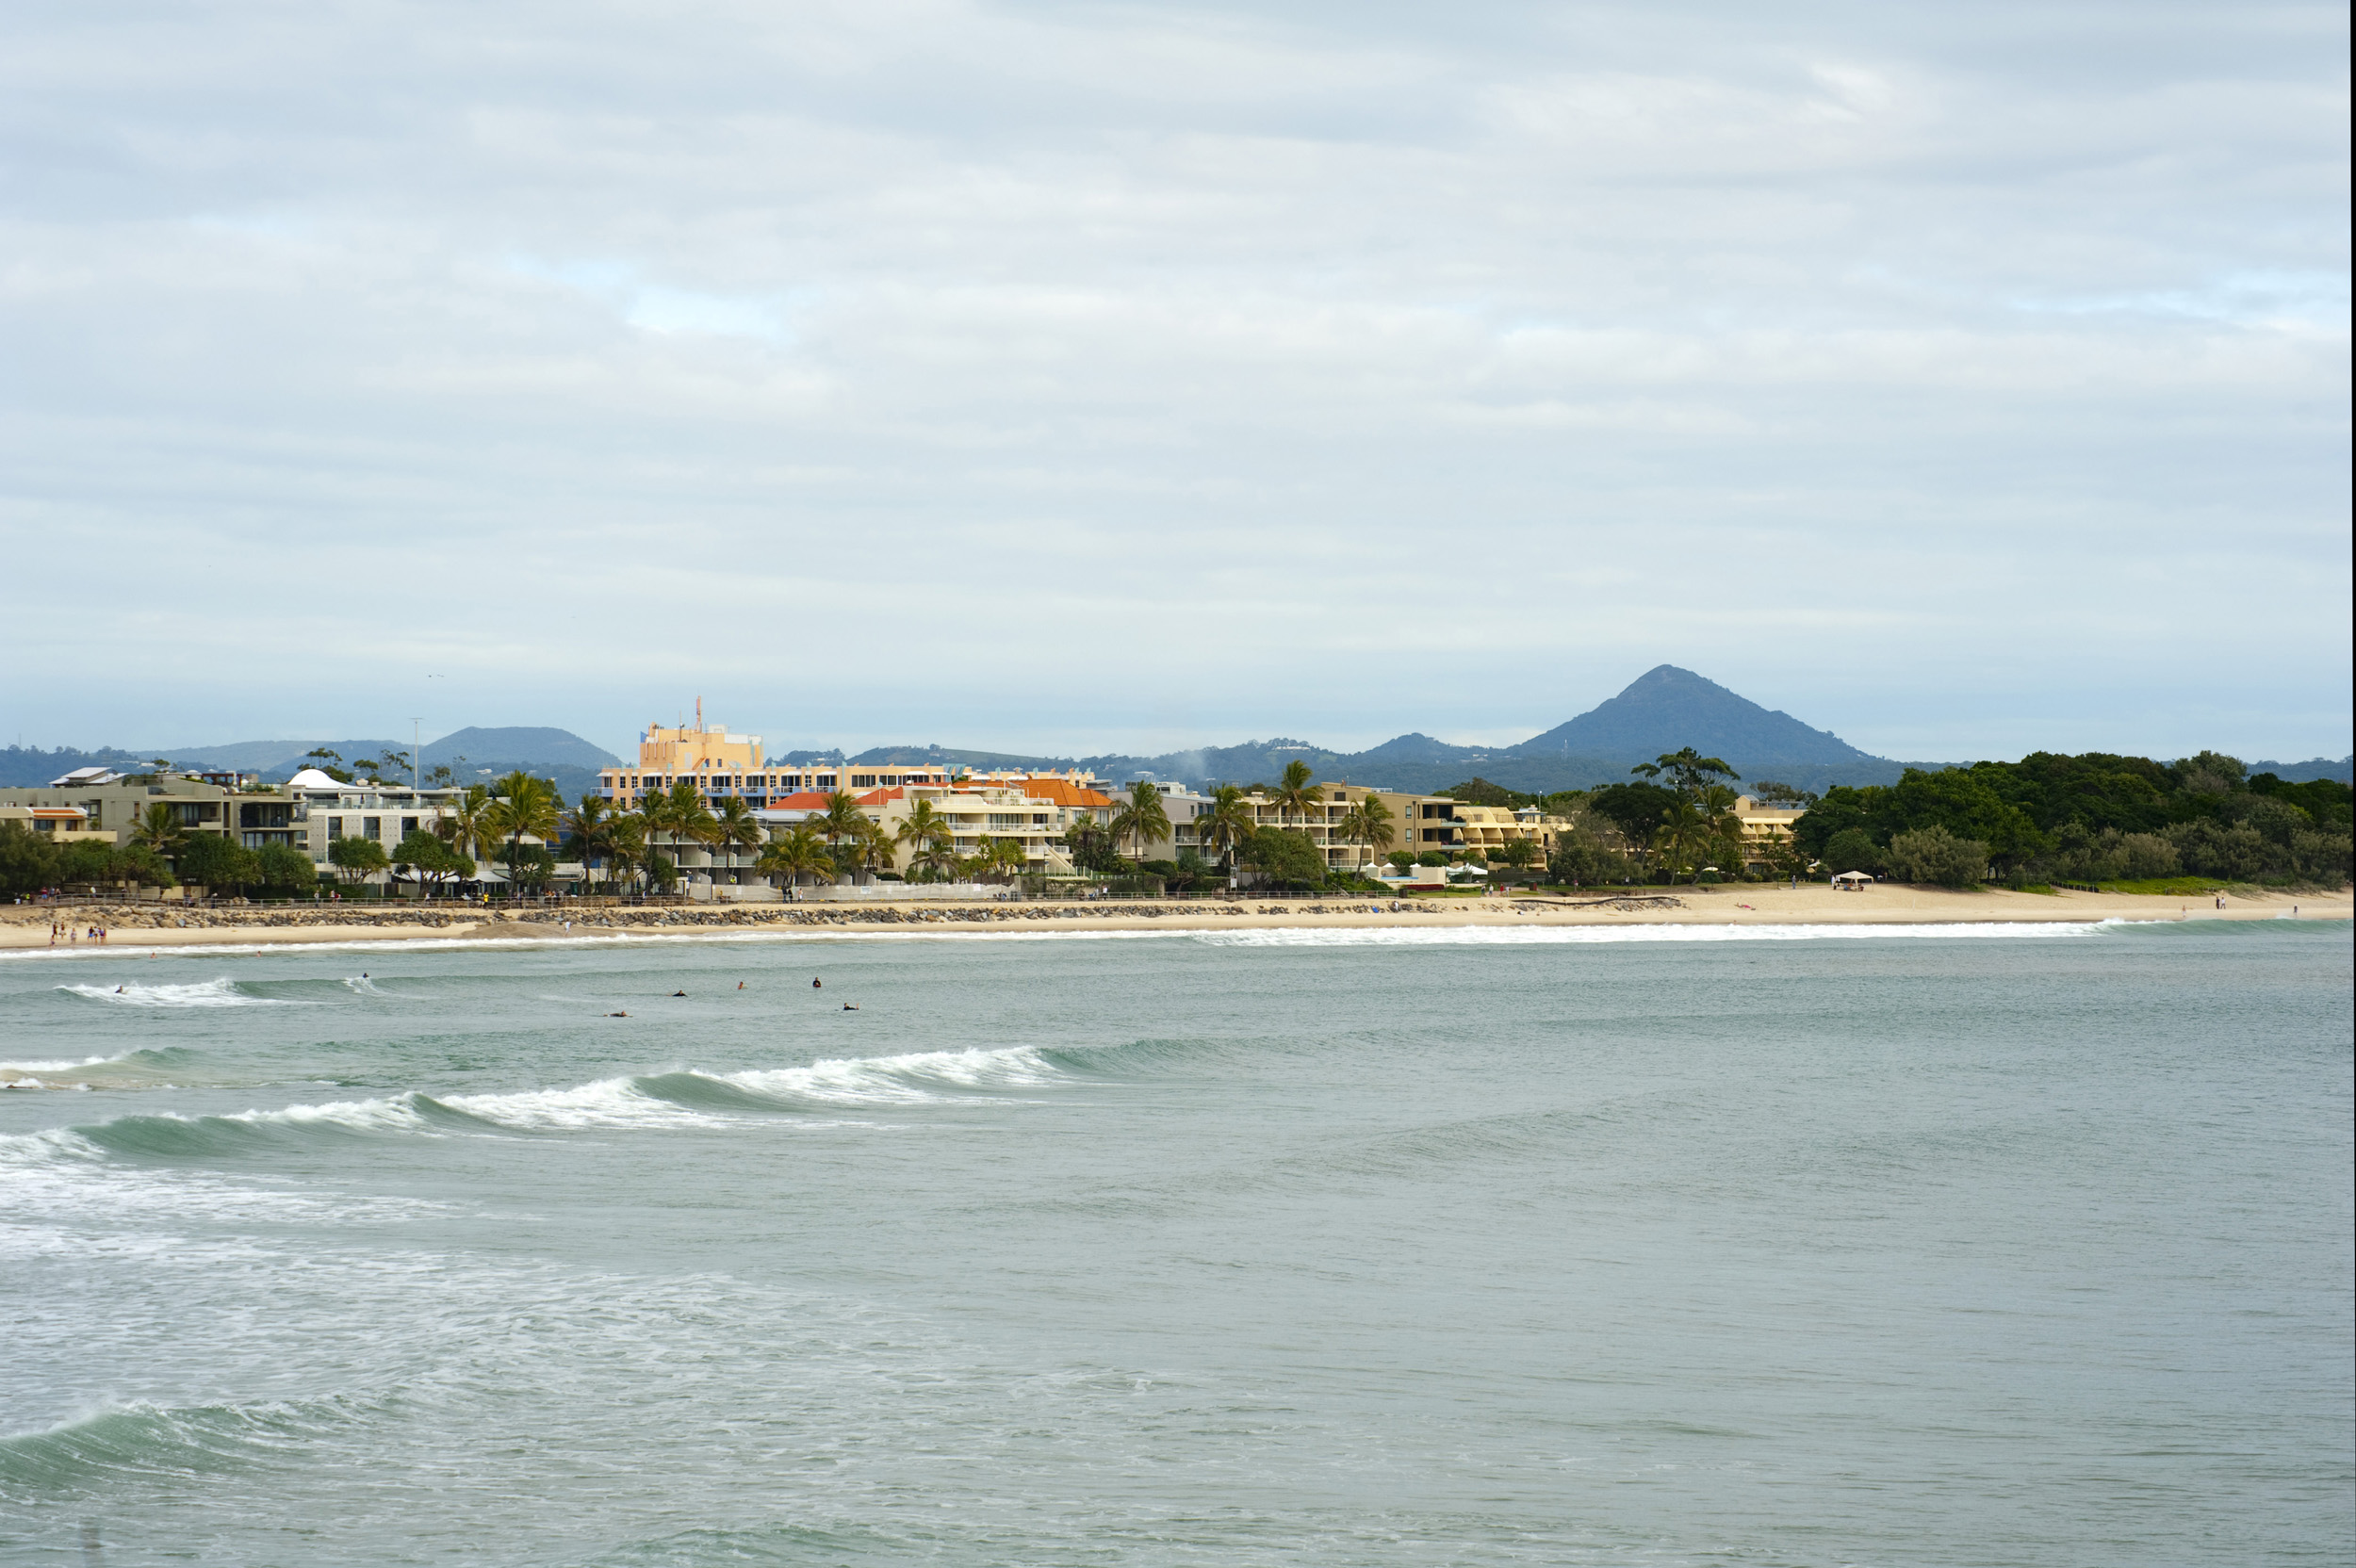 Noosa beach and waterfront, a popular resort and surfing destination in Queensland, Australia